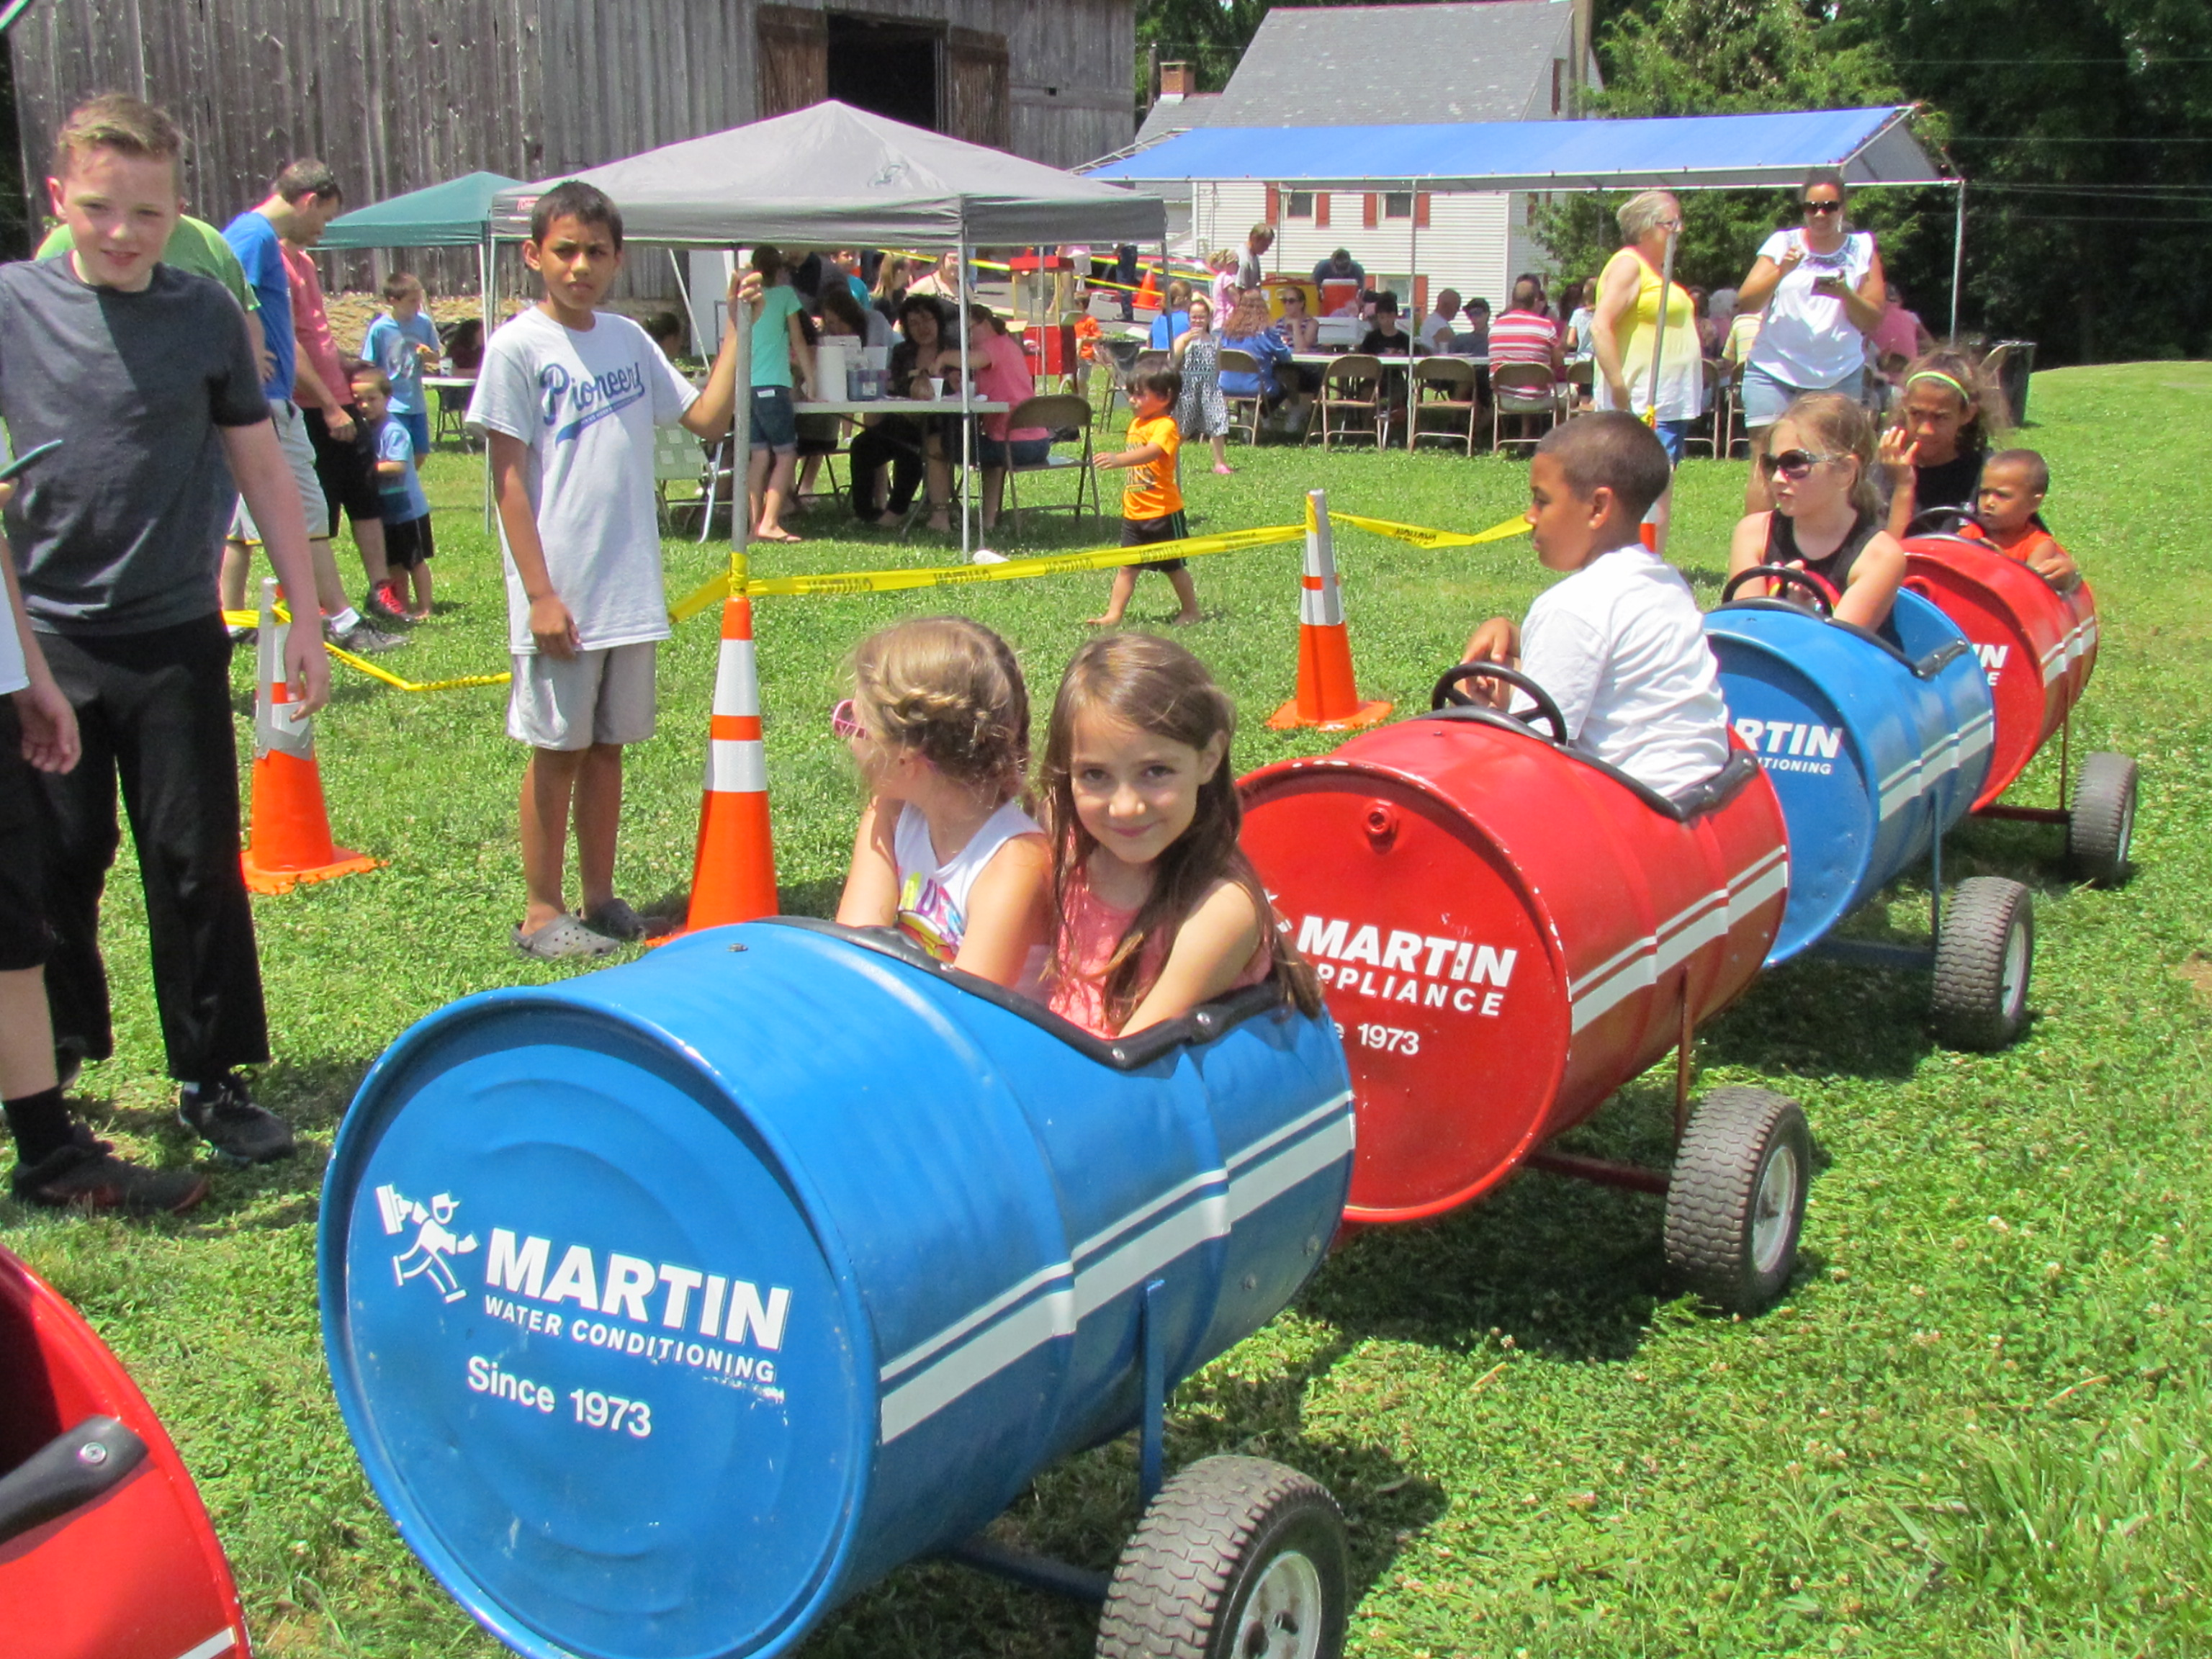 The barrel train was a huge hit with the kids.